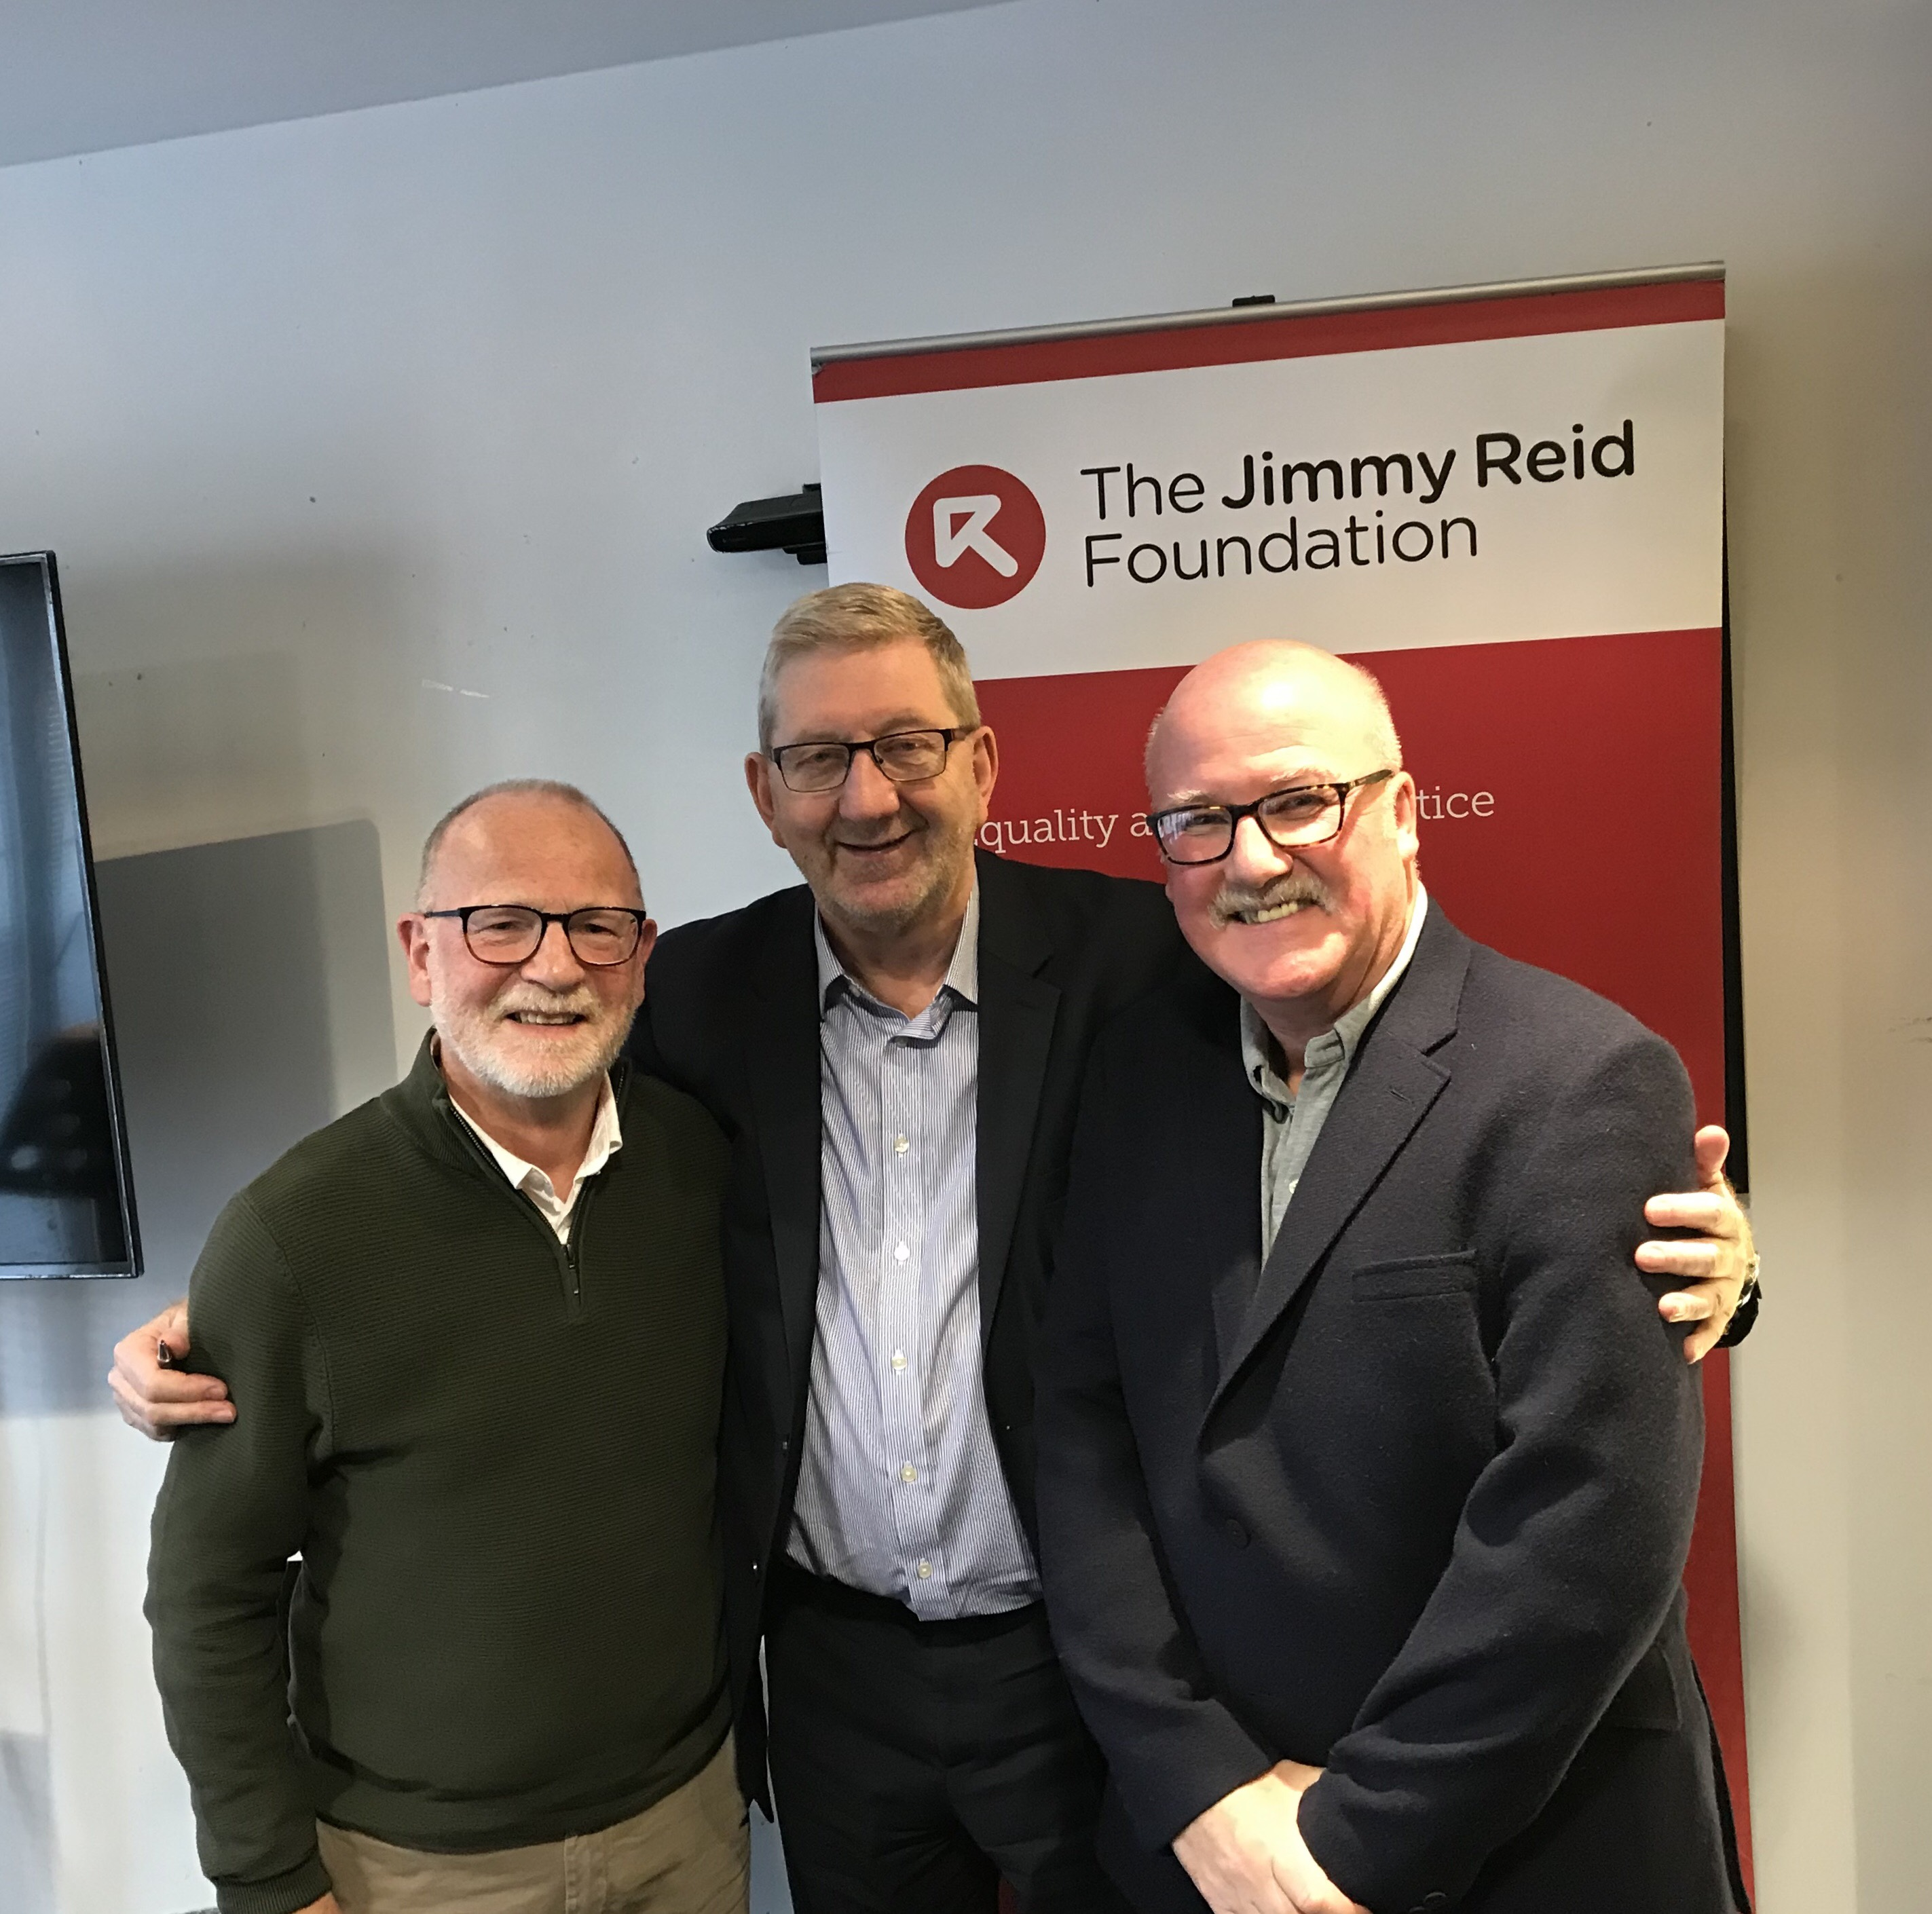 Jimmy Reid Biography launch